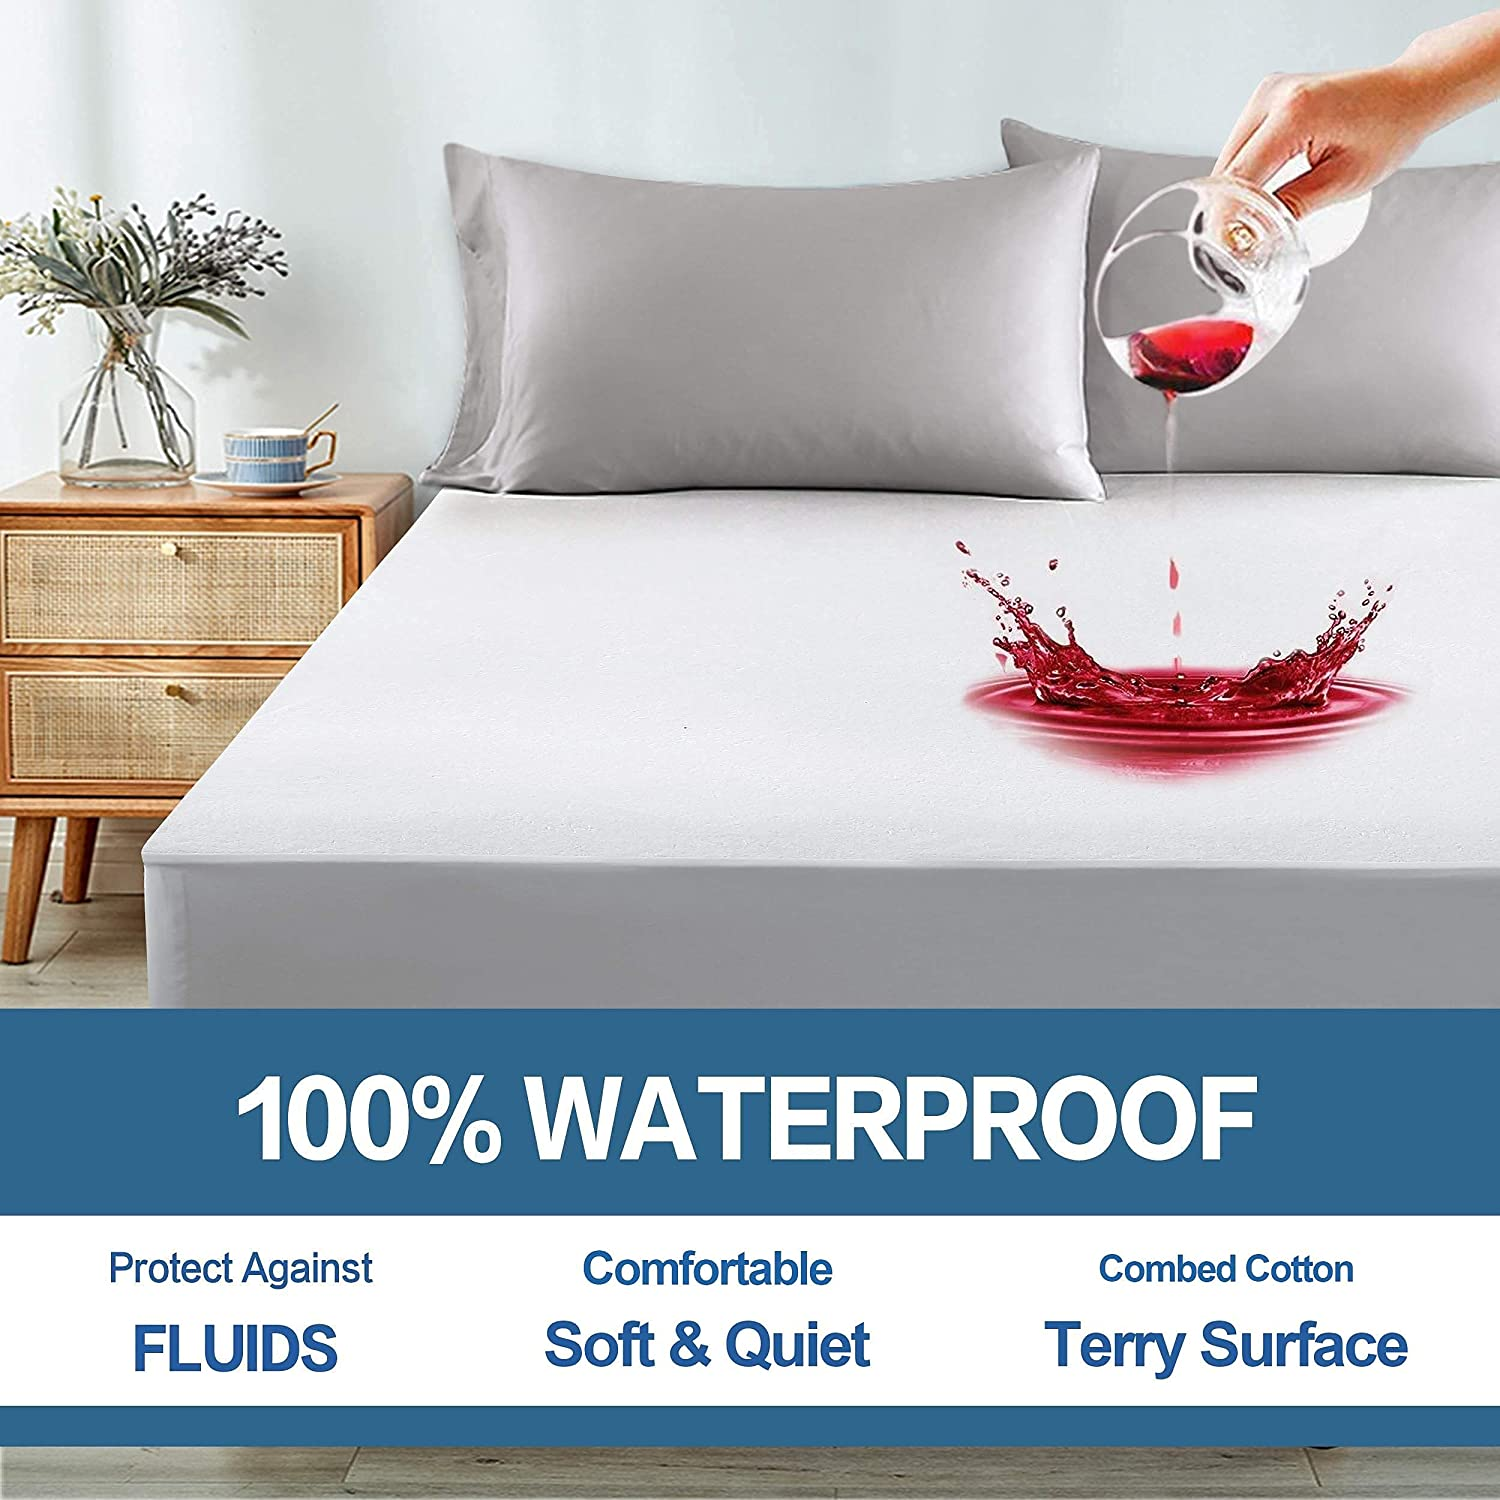 COHOME 100% Waterproof Mattress Protector Super beauty product restock quality Atlanta Mall top inch 8-21 Queen Fitted